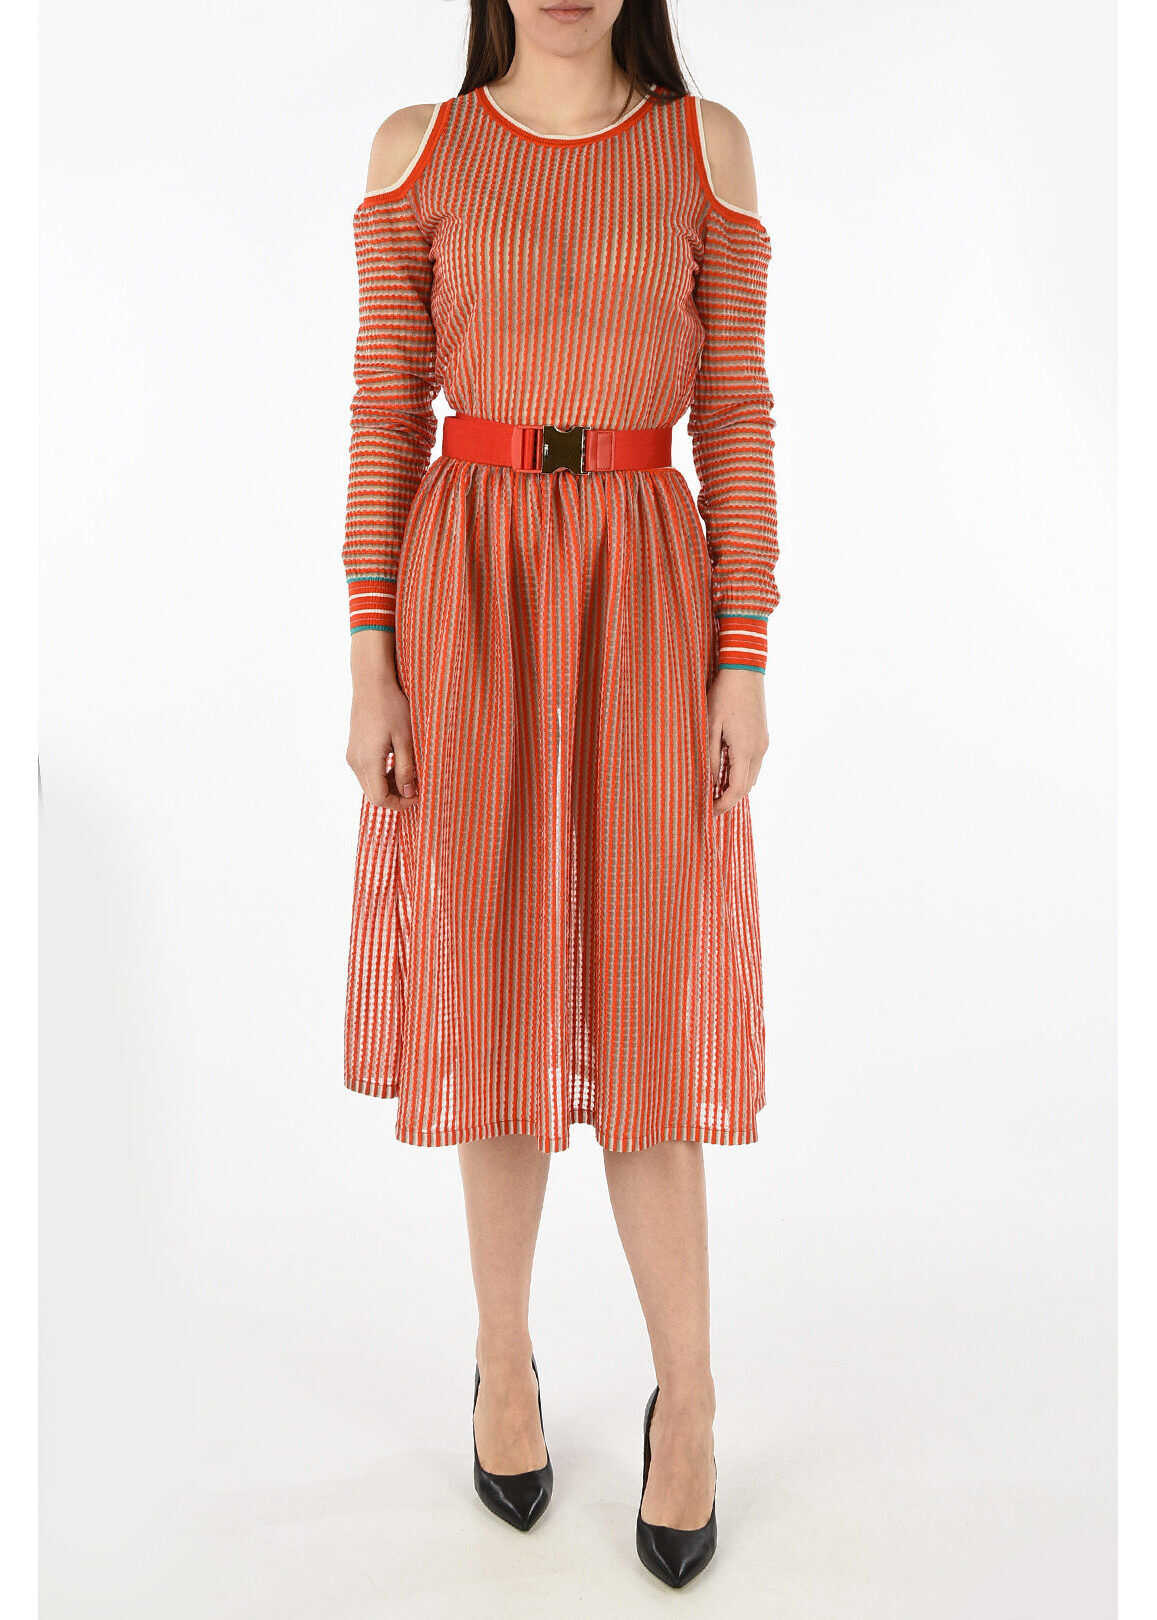 Fendi mini check a-line BAHAMAS dress ORANGE